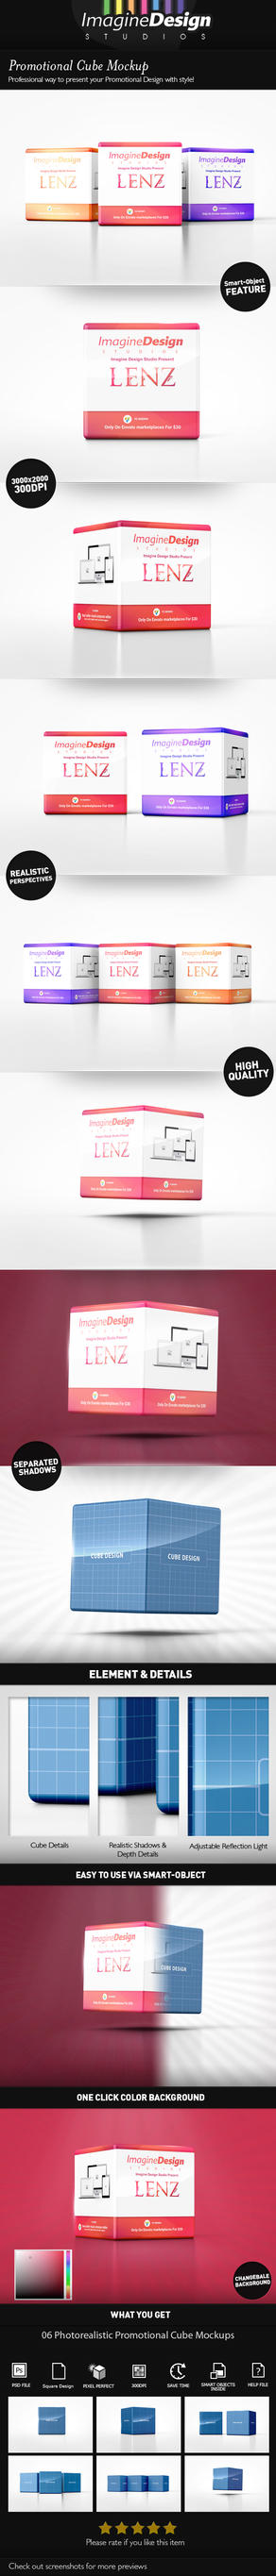 Promotional Cube Display Mockup by idesignstudio